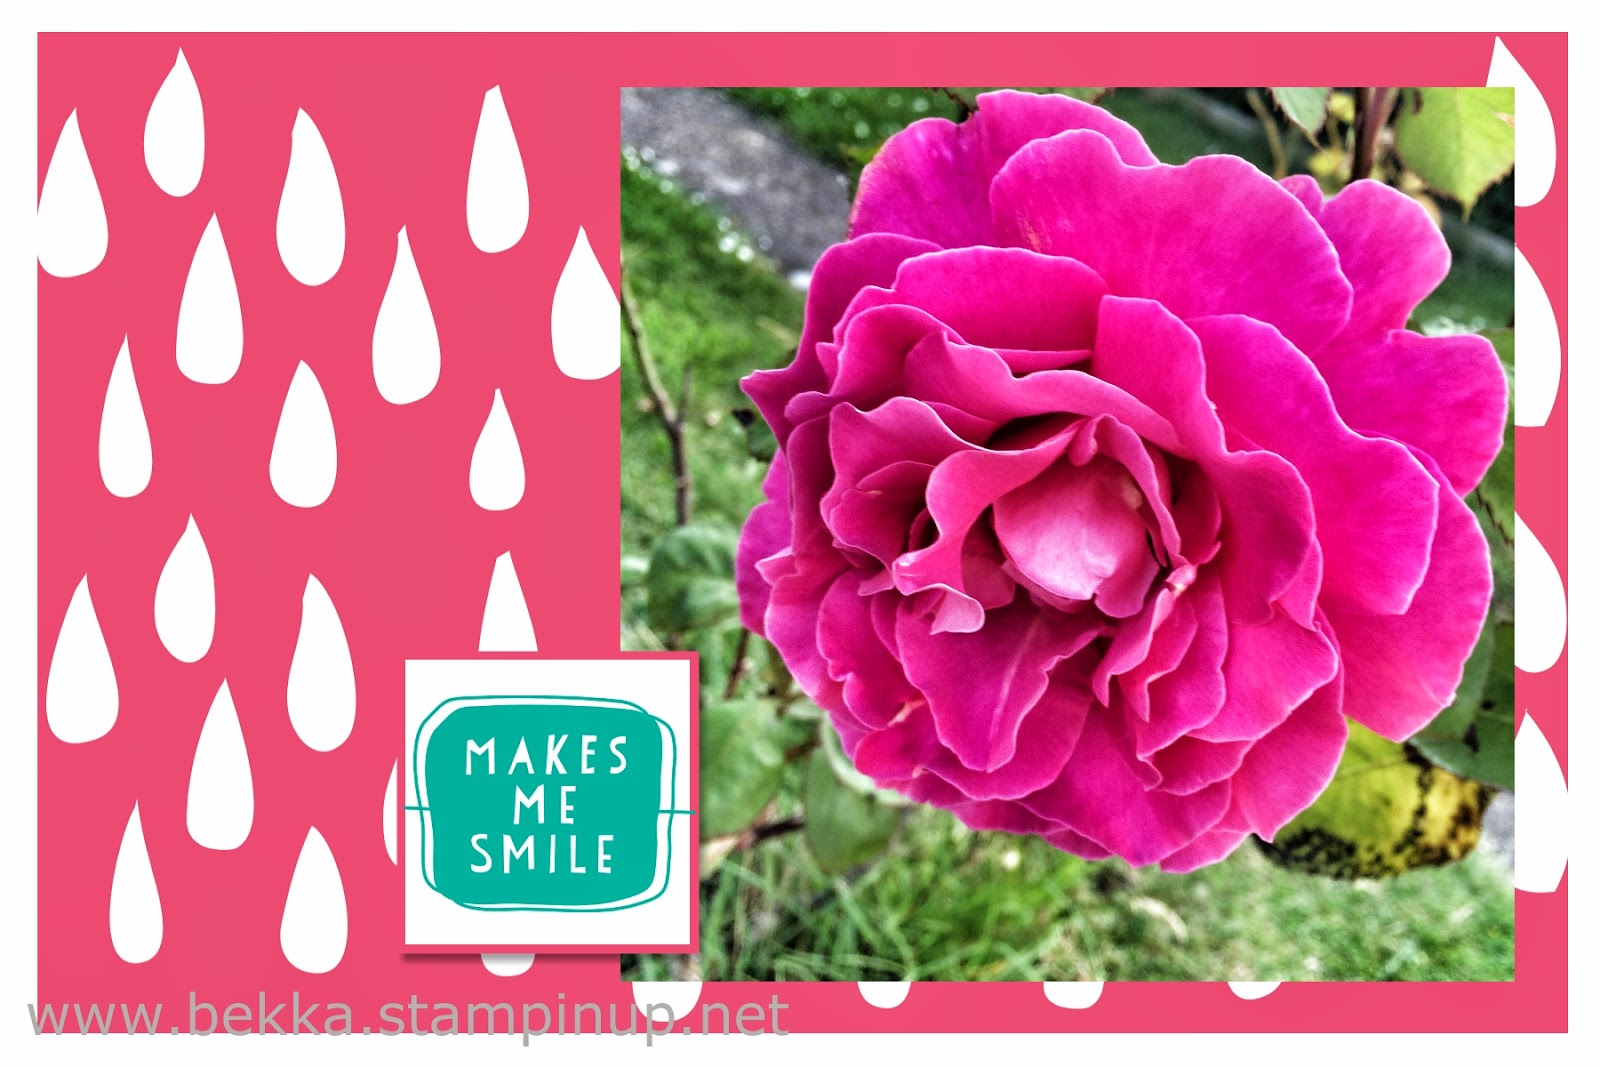 Check out how to use your Instagram Photos for Project Life by Stampin' Up!